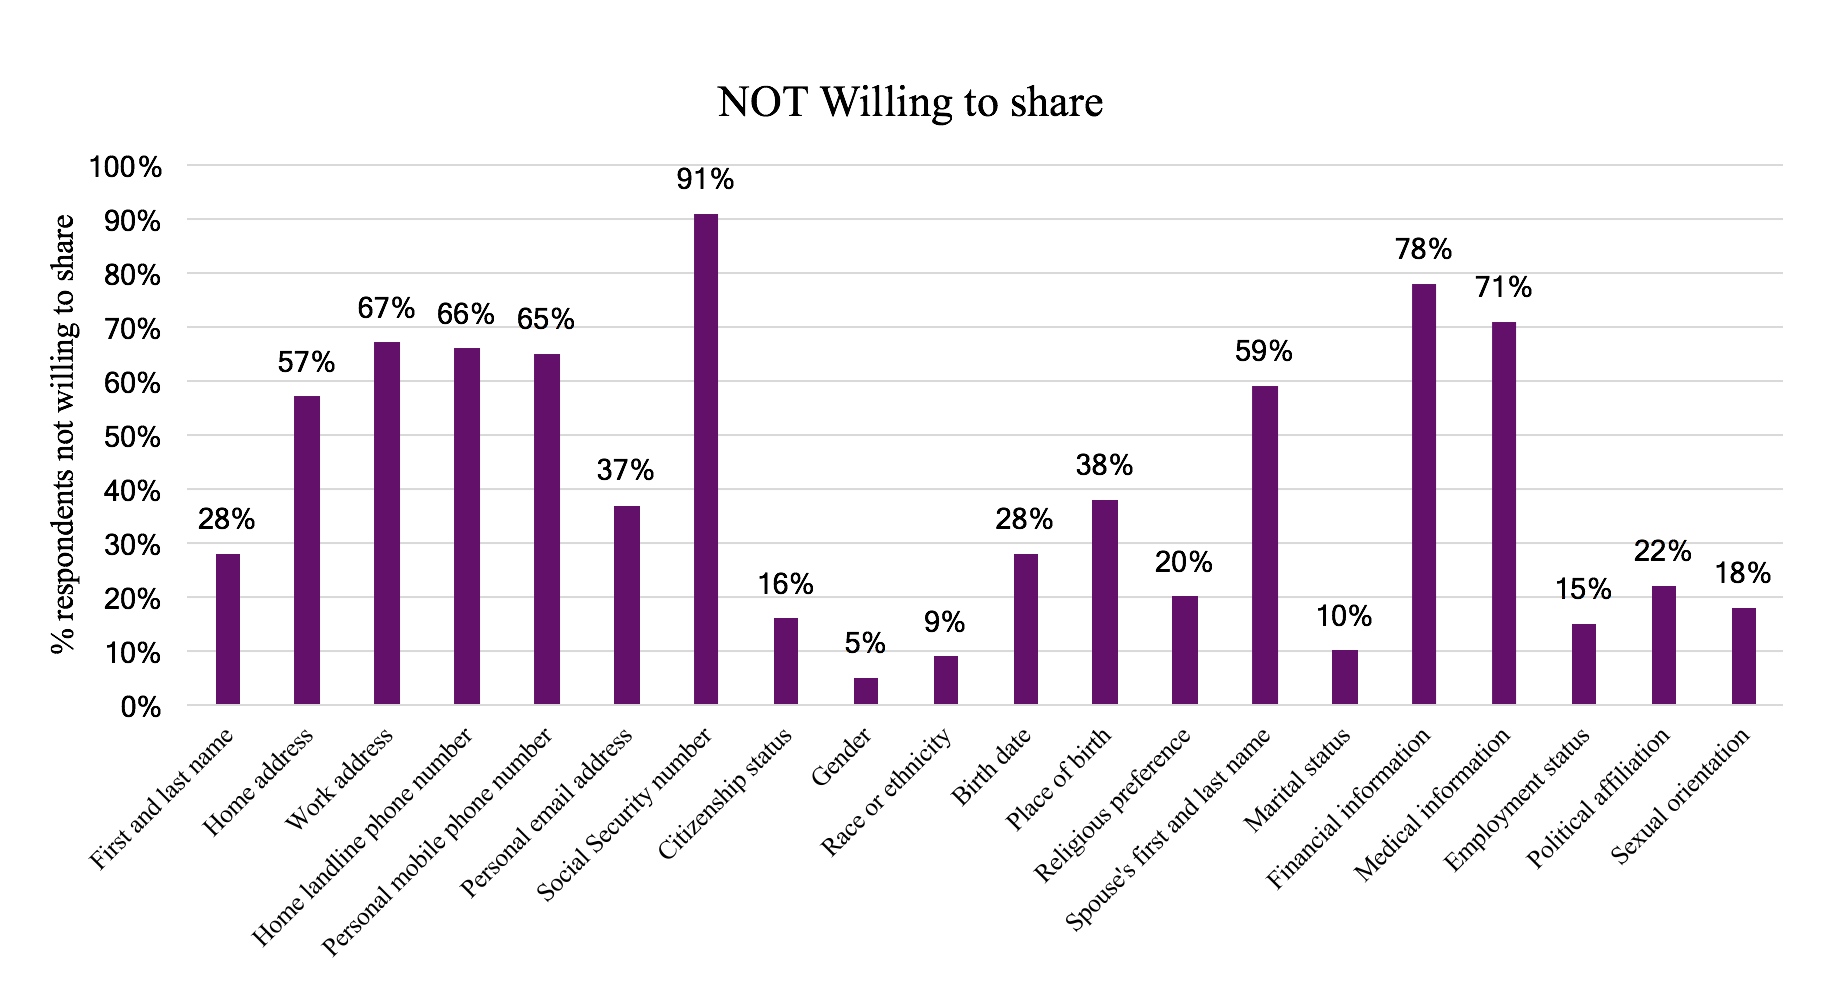 Most Consumers Willing To Share Data About Who They Are, But Not